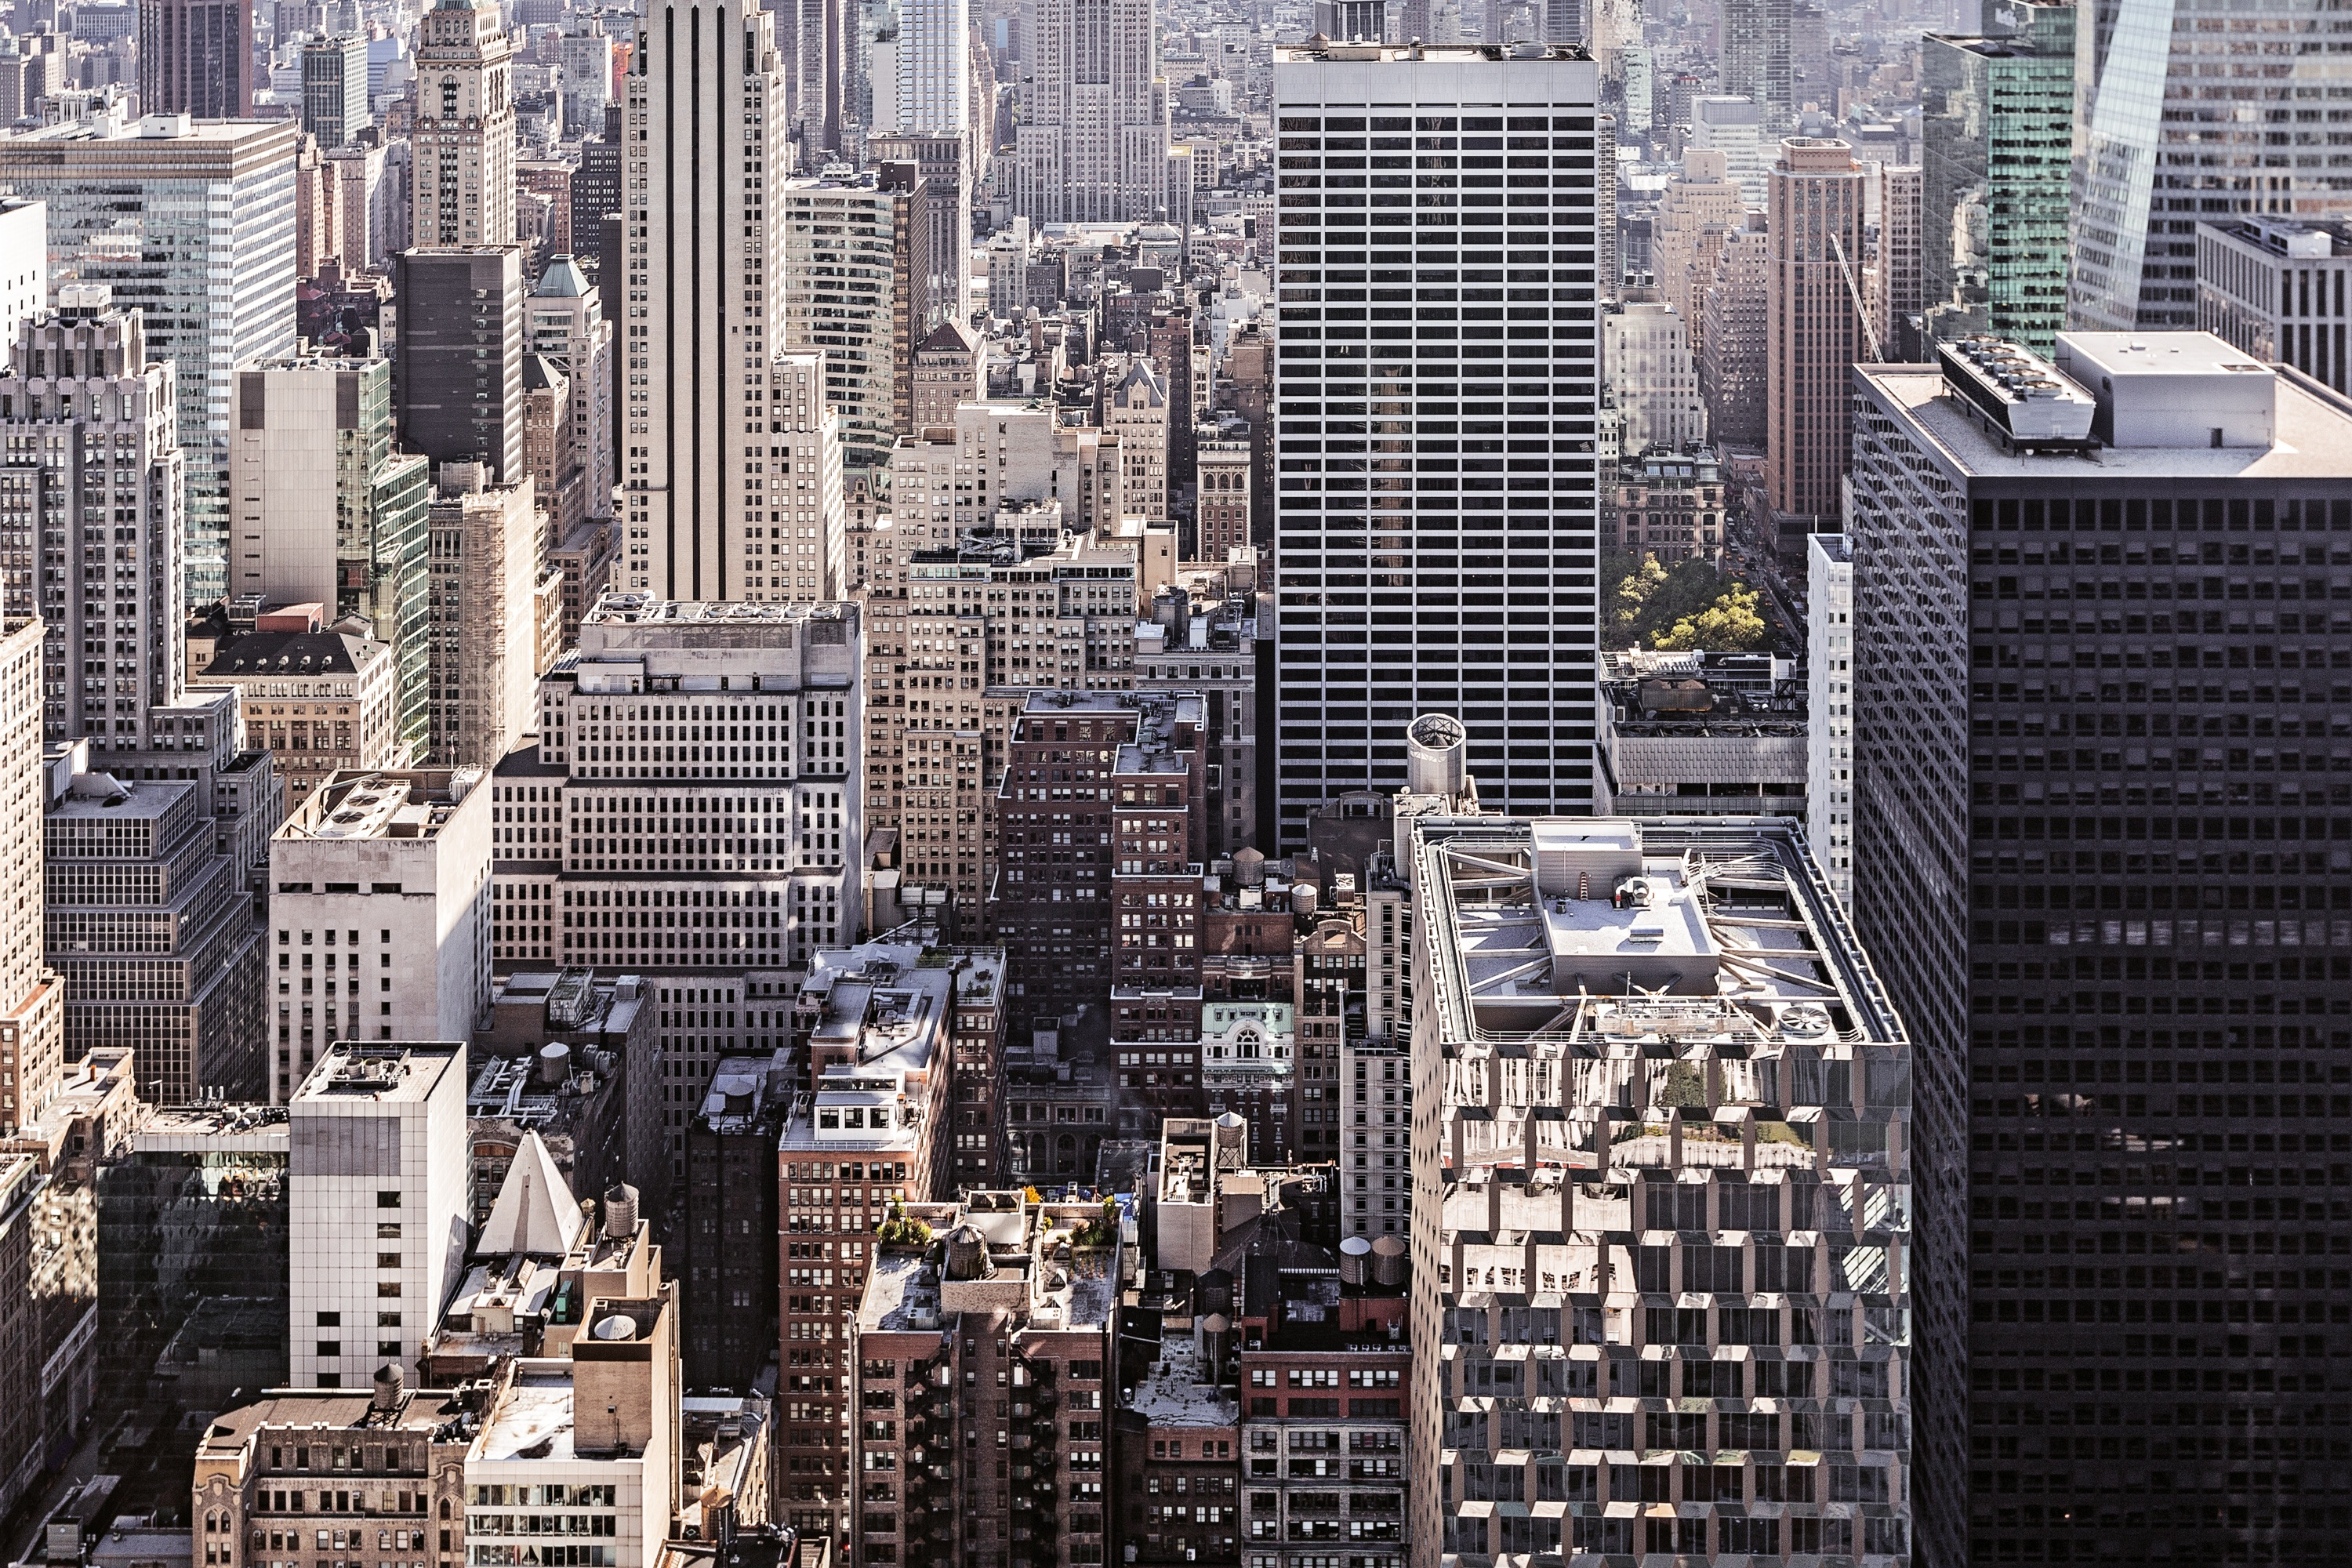 The city of skyscrapers, new york, buildings, skyscrapers, architecture, city, modern, metropolis